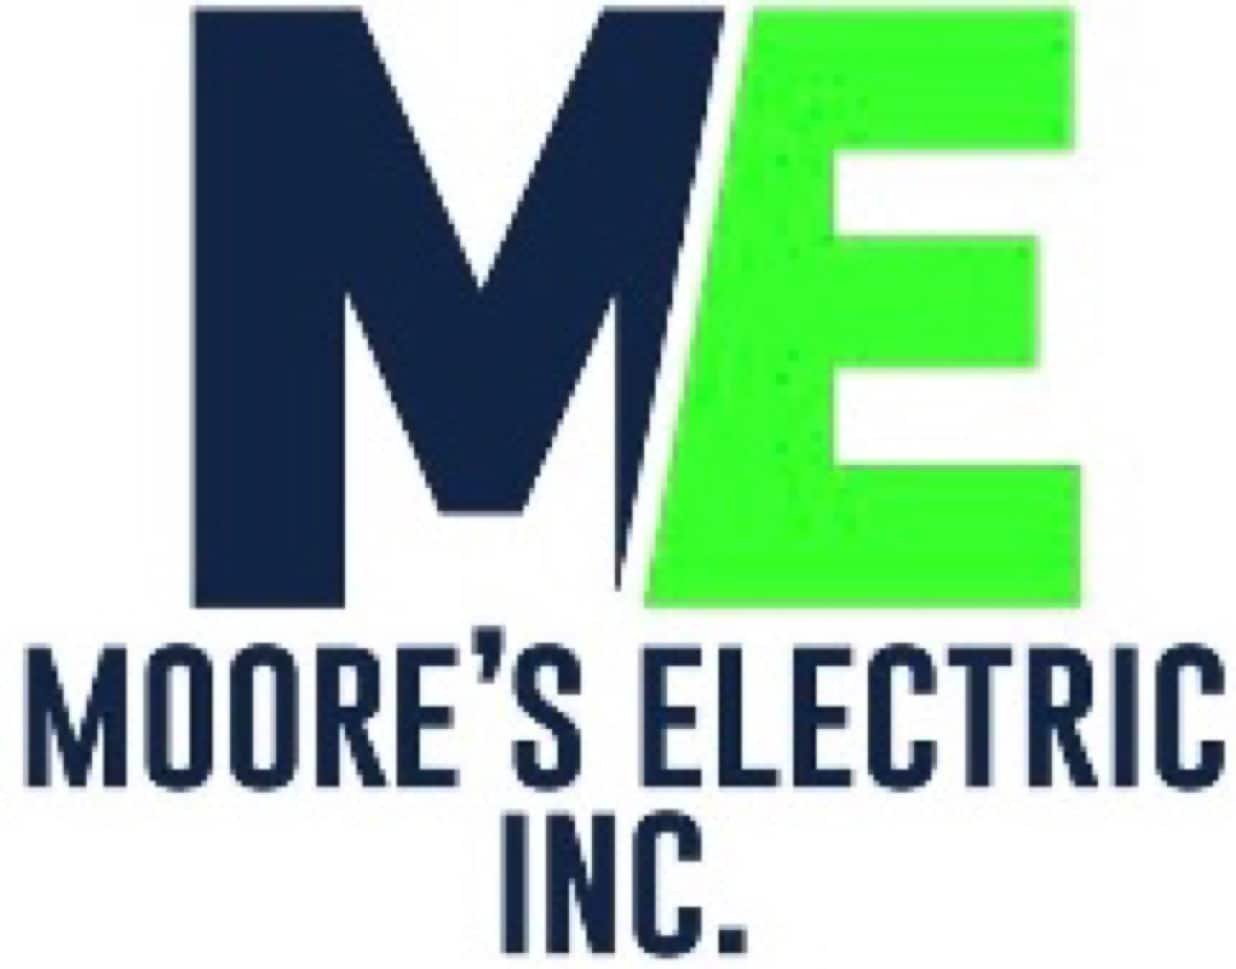 Moore's Electric